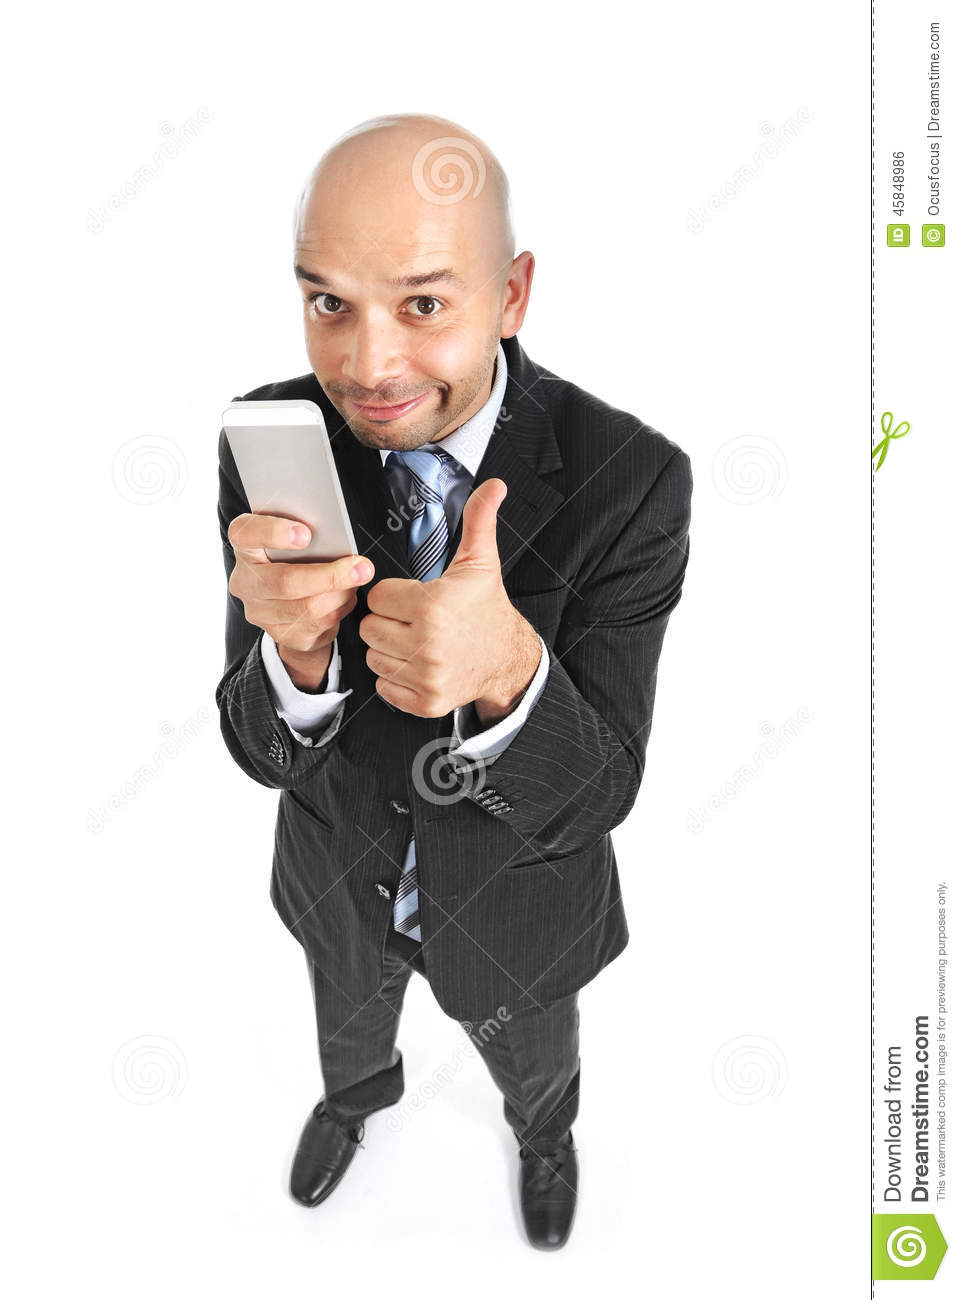 Happy businessman using compulsively cell phone smiling in mobil